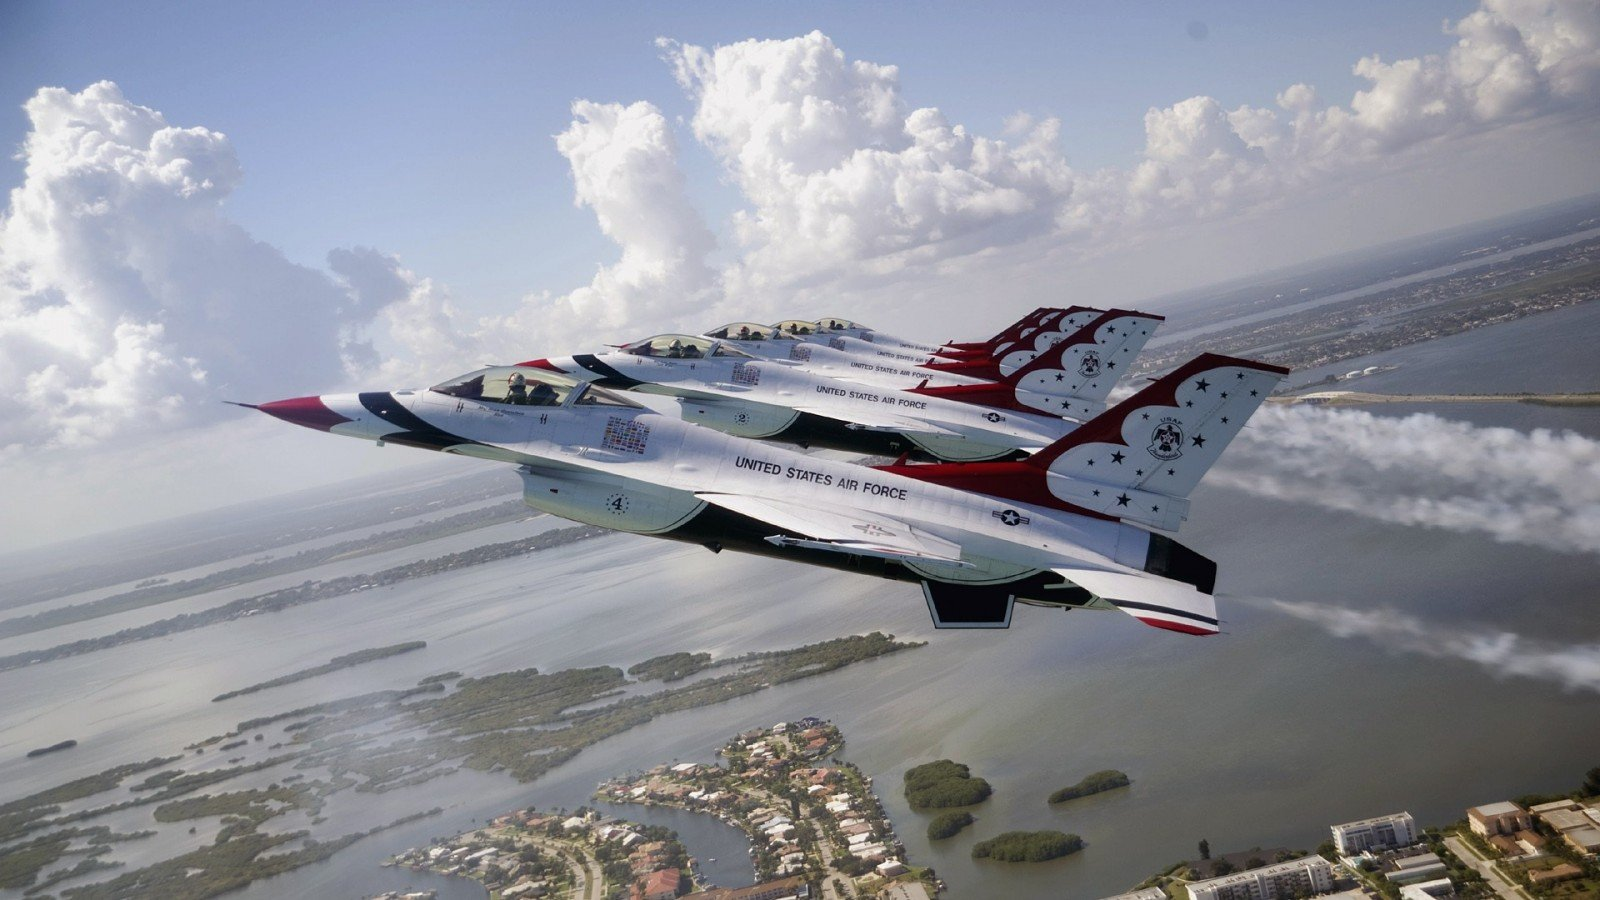 thunderbirds images wallpapers hd - photo #11